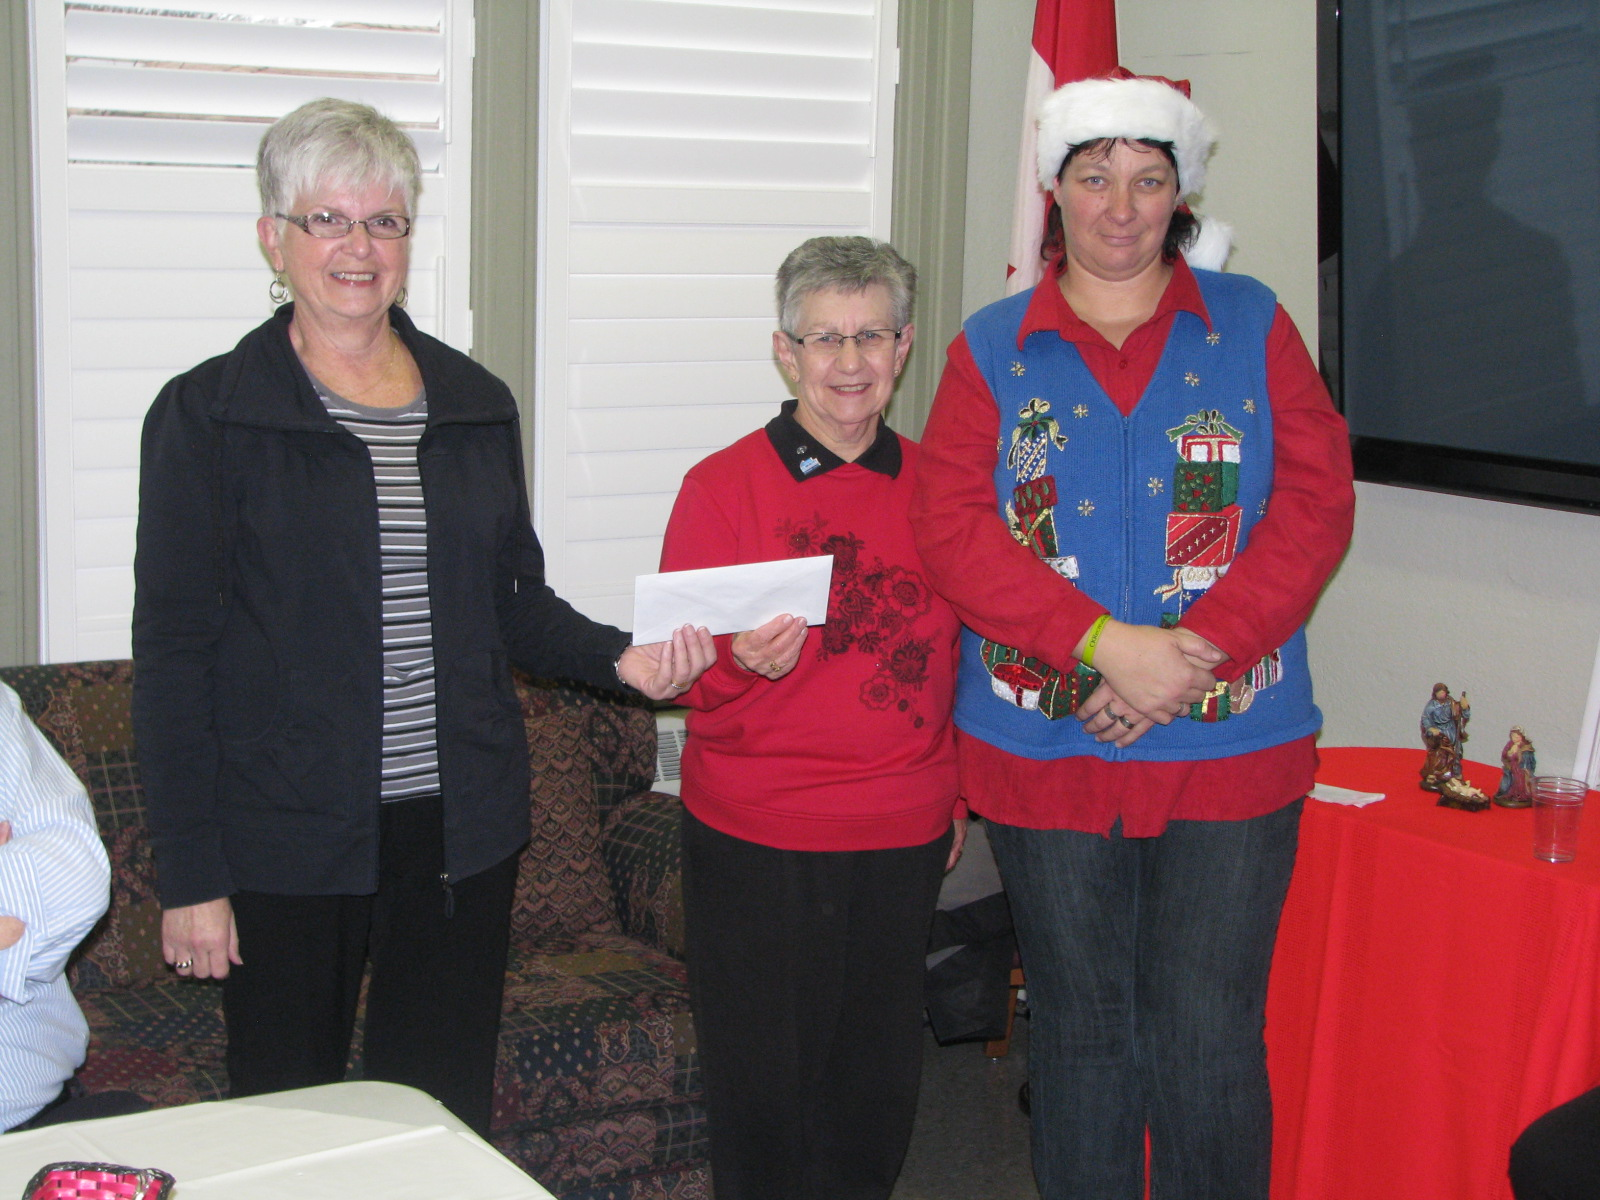 Division 3 LG Blog: Chatham-Kent Aktion Club holds Christmas Party